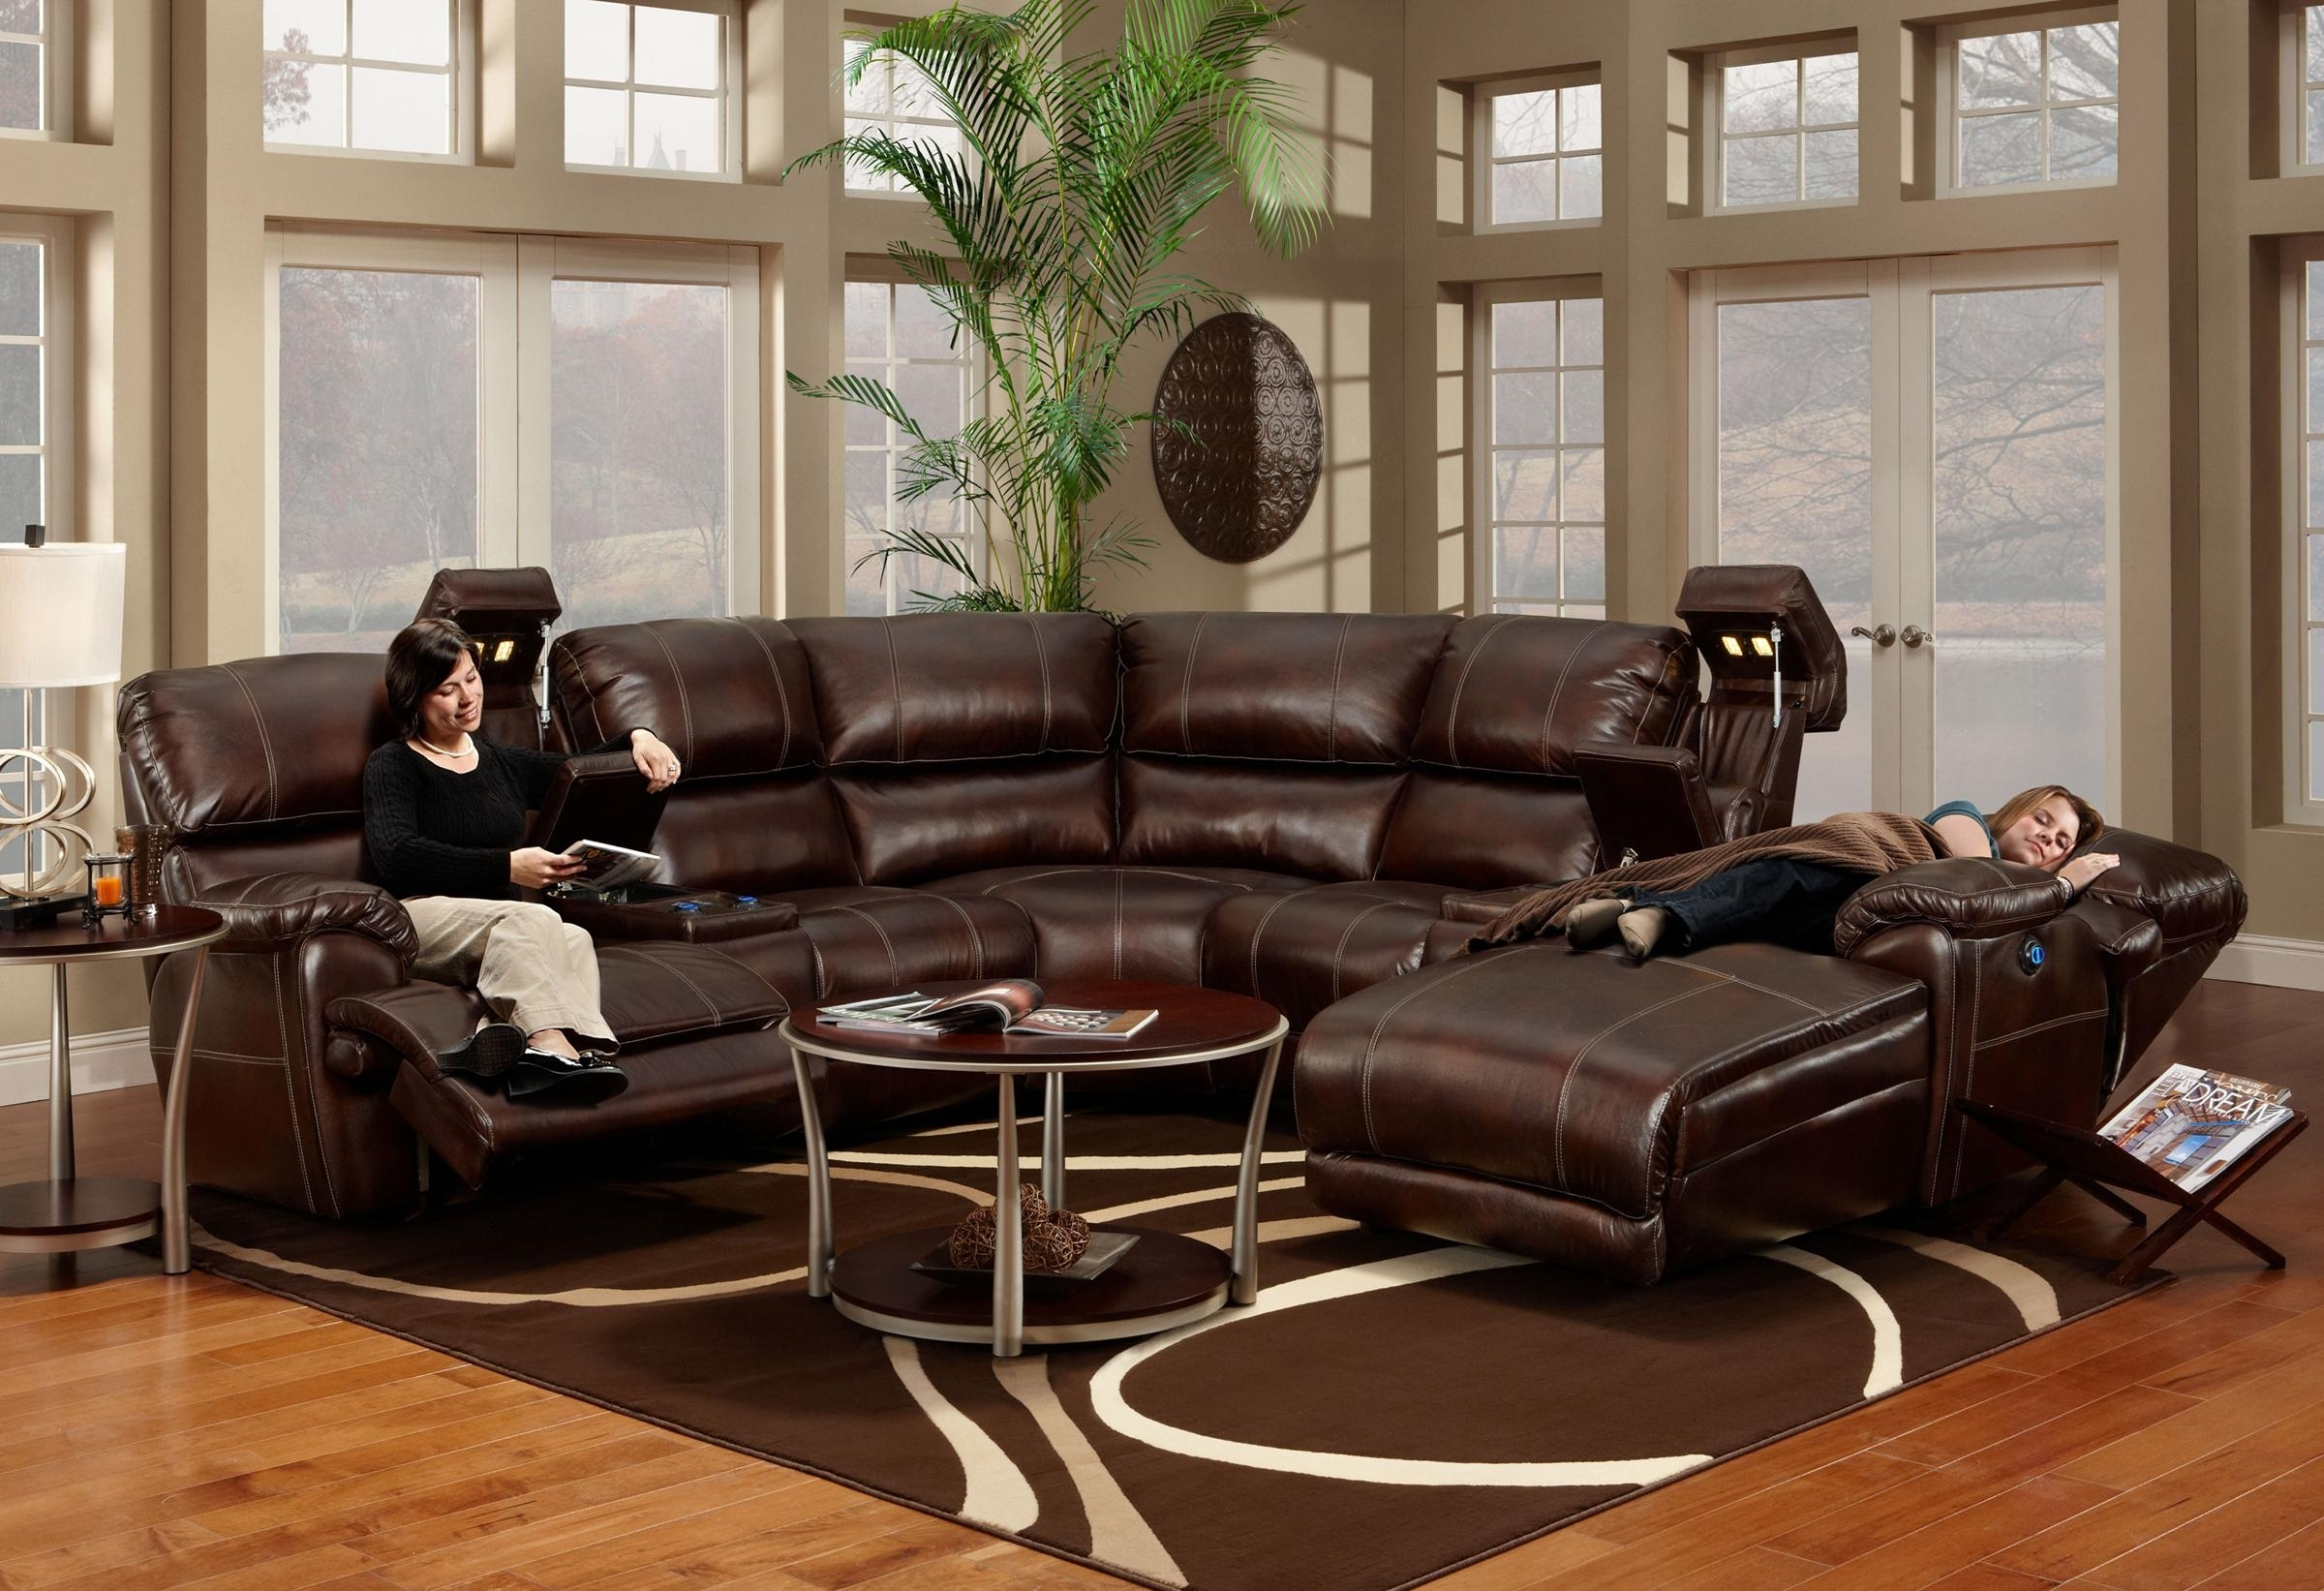 Franklin 572 Reclining Sectional Sofa With Chaise - Ahfa - Sofa with Blaine 4 Piece Sectionals (Image 13 of 30)